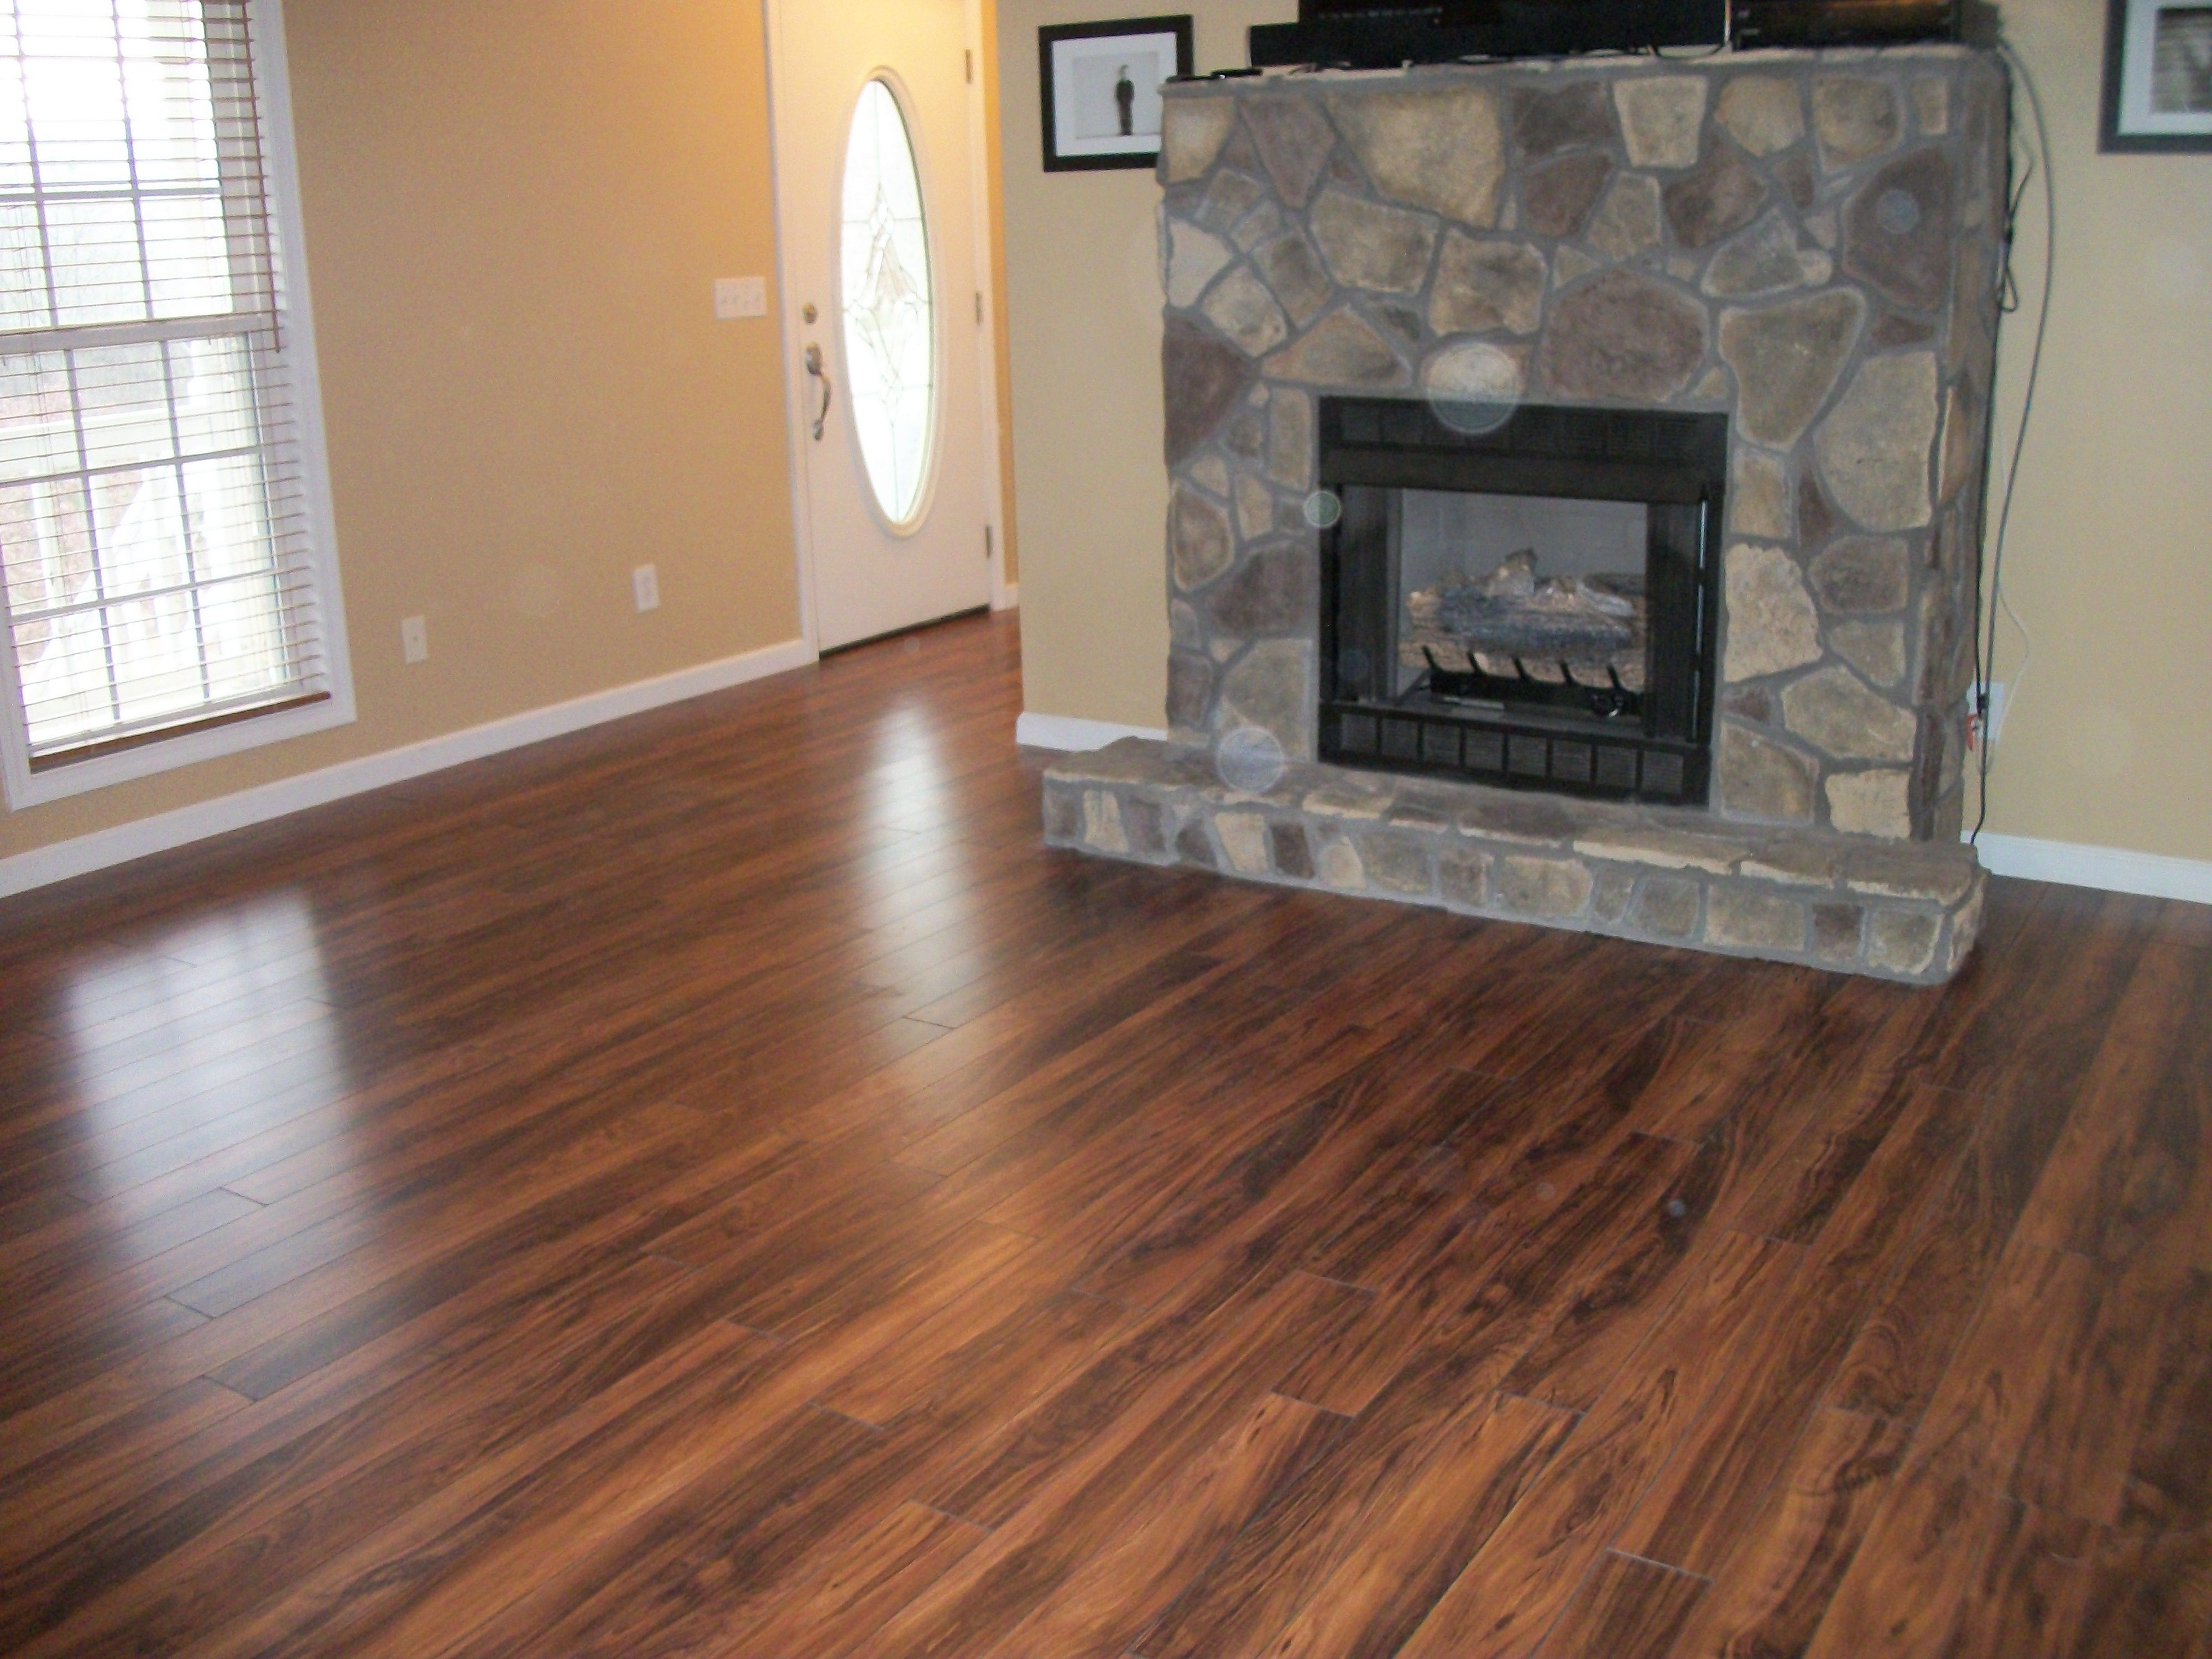 New laminate flooring looks great with the fireplace